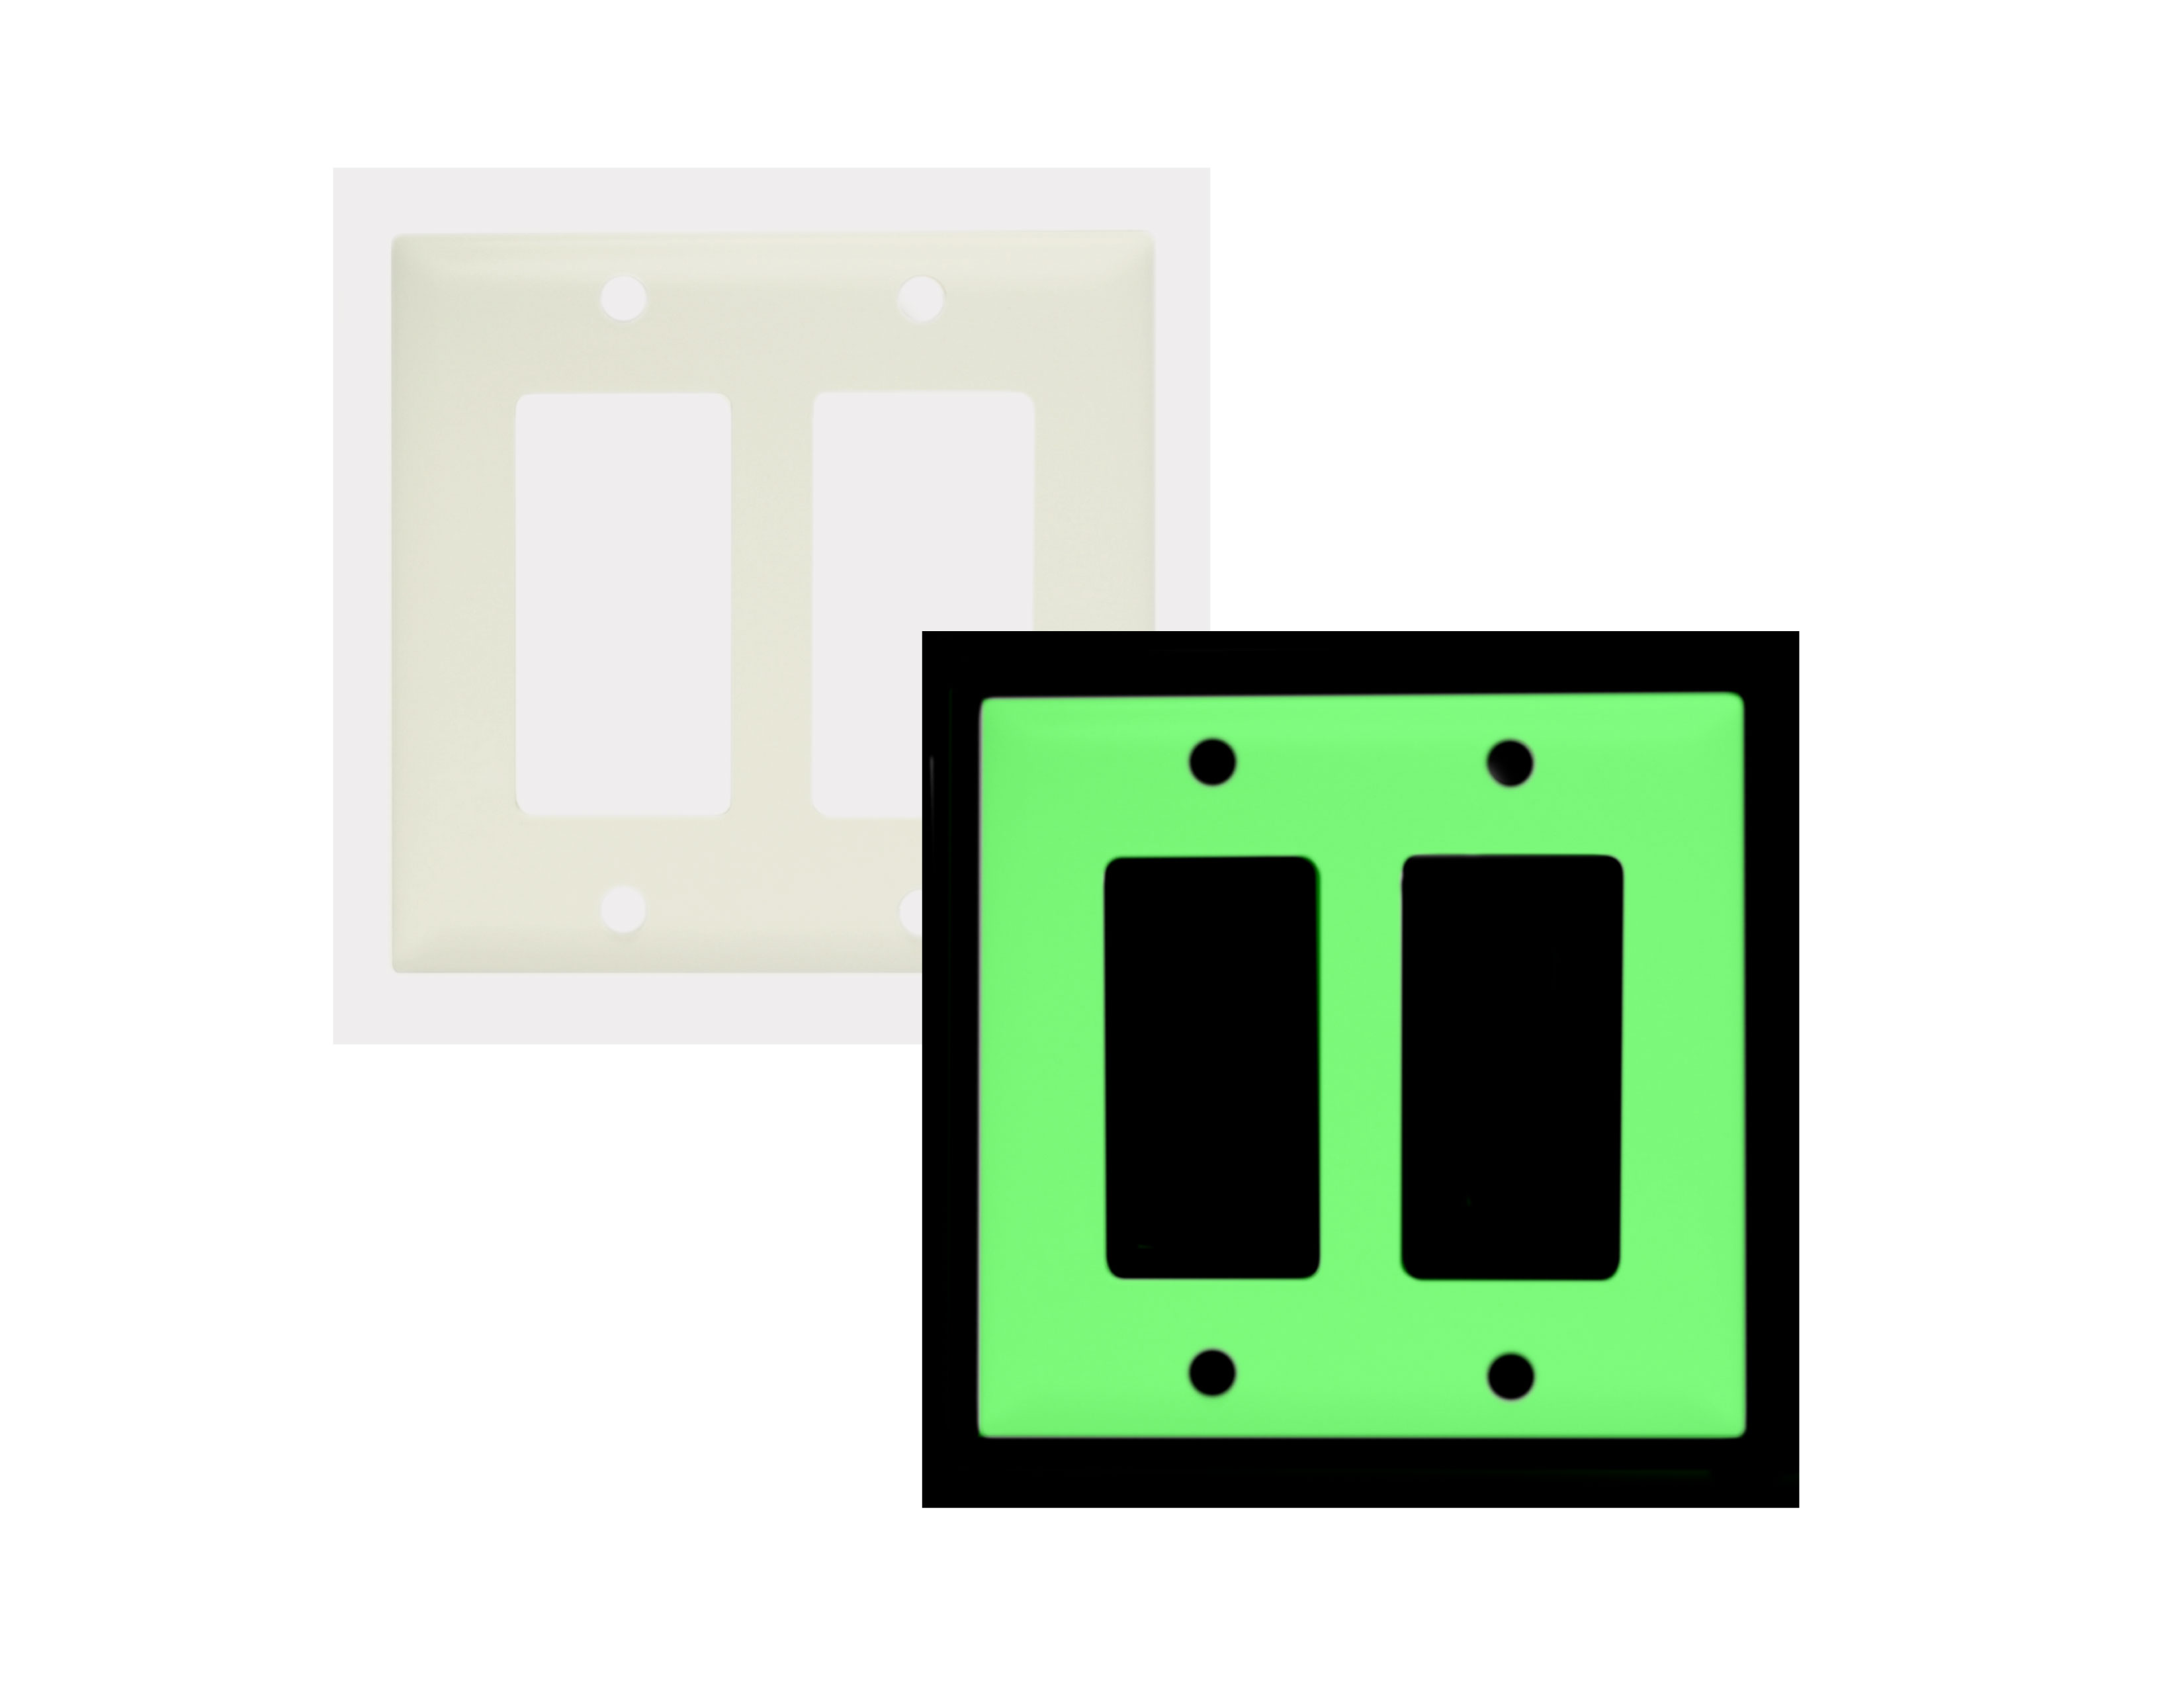 Double Glowing Switch Plate Image